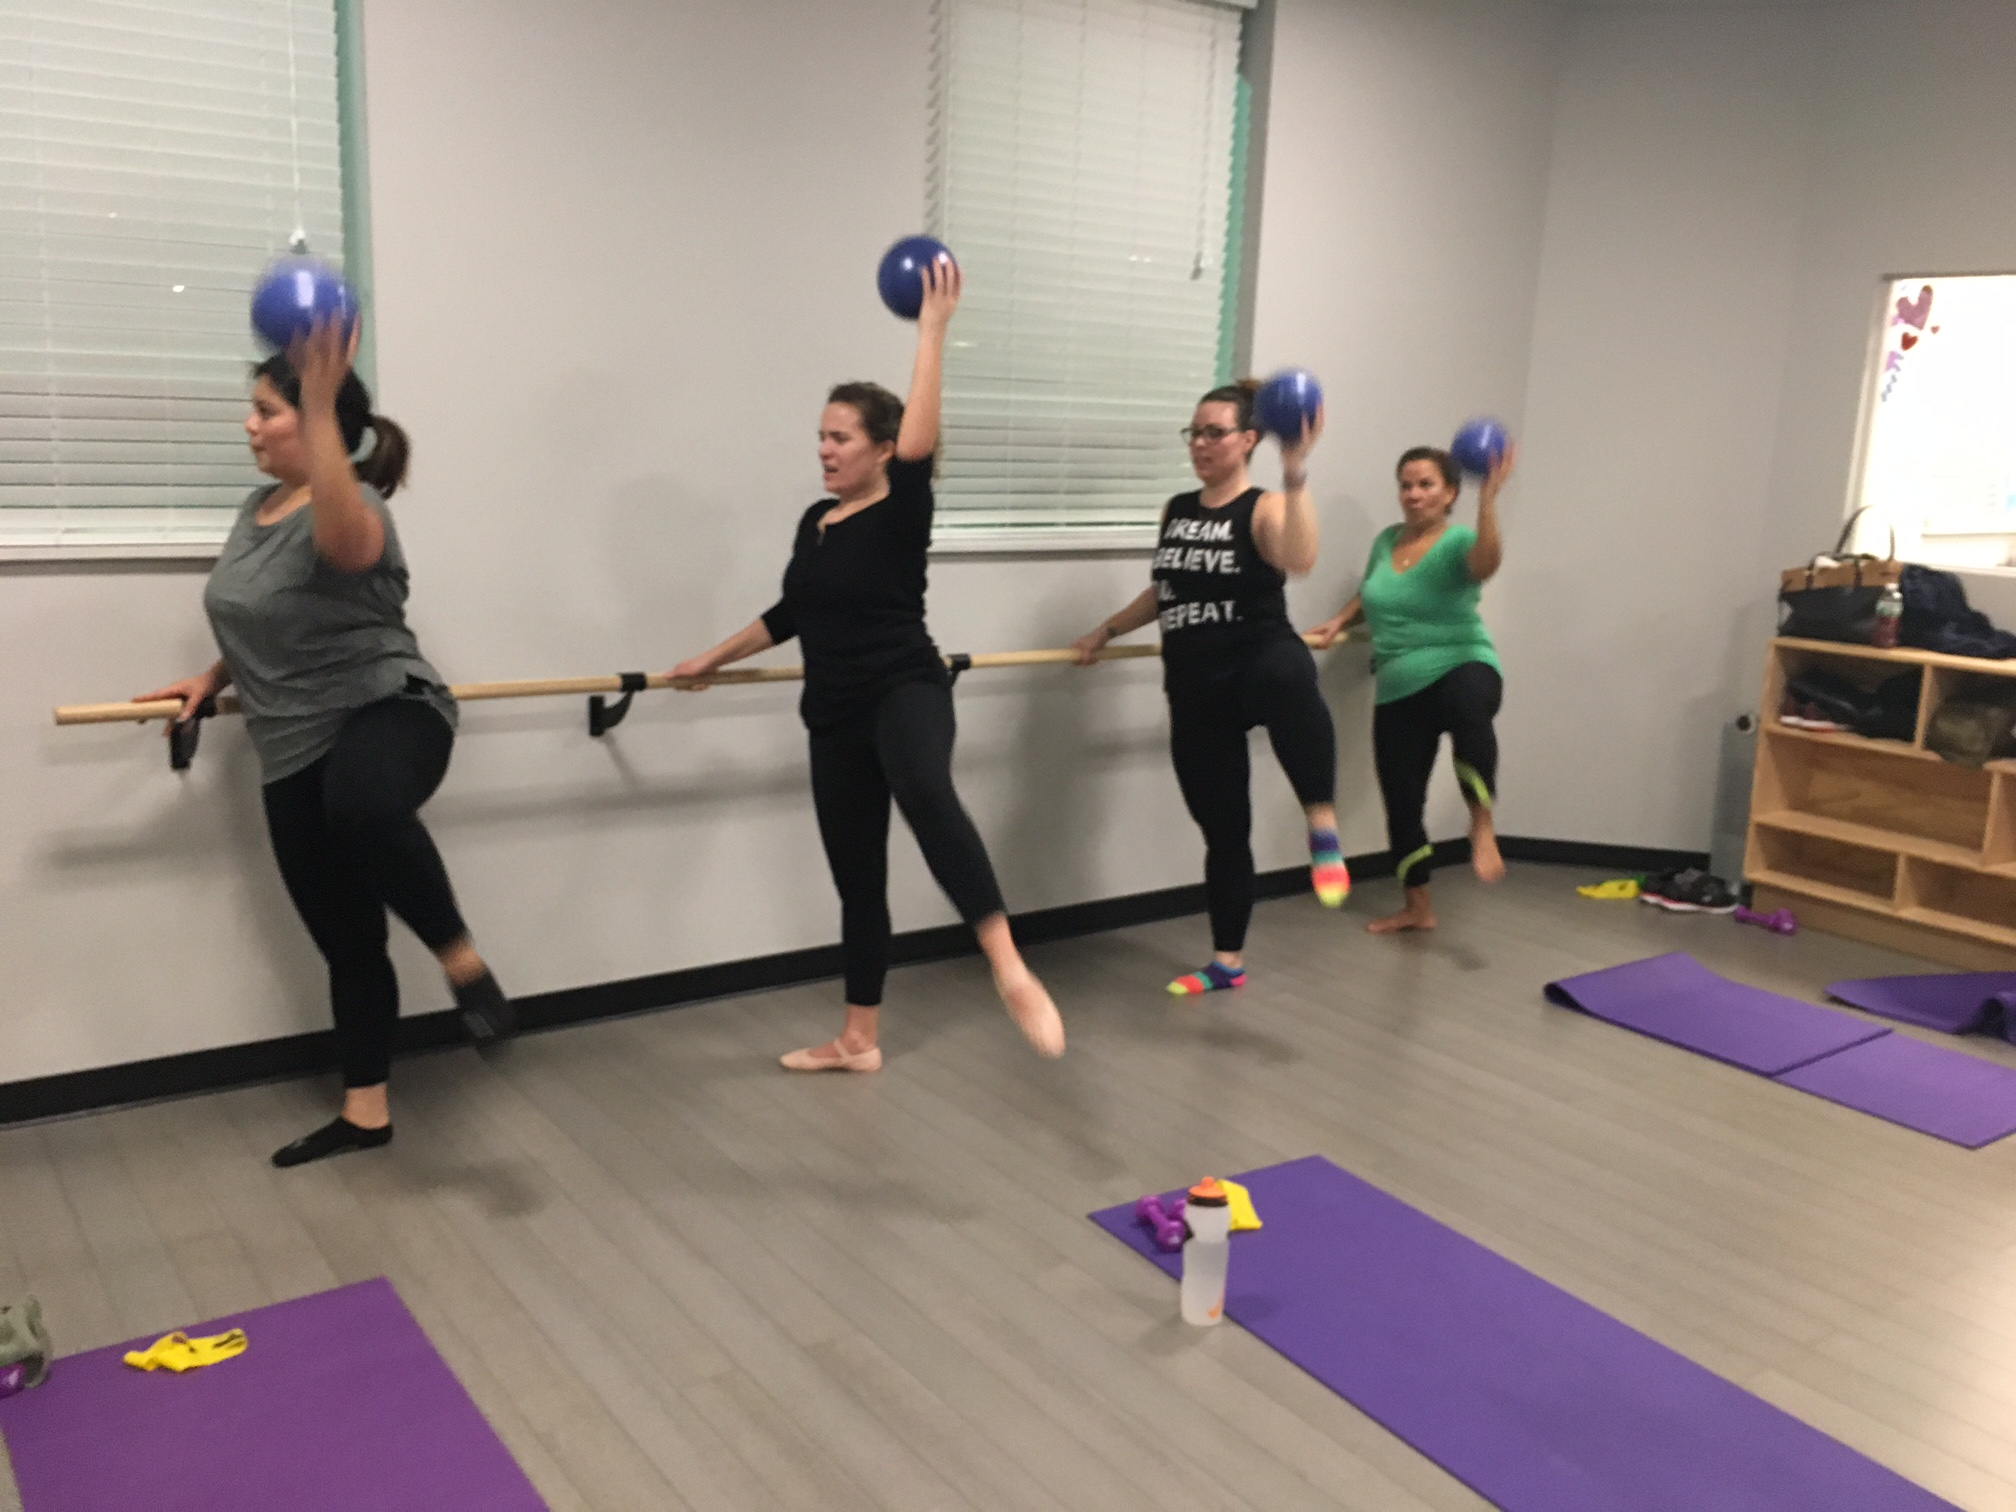 My barre class is an amazing group that offers a good workout and support from other participants!